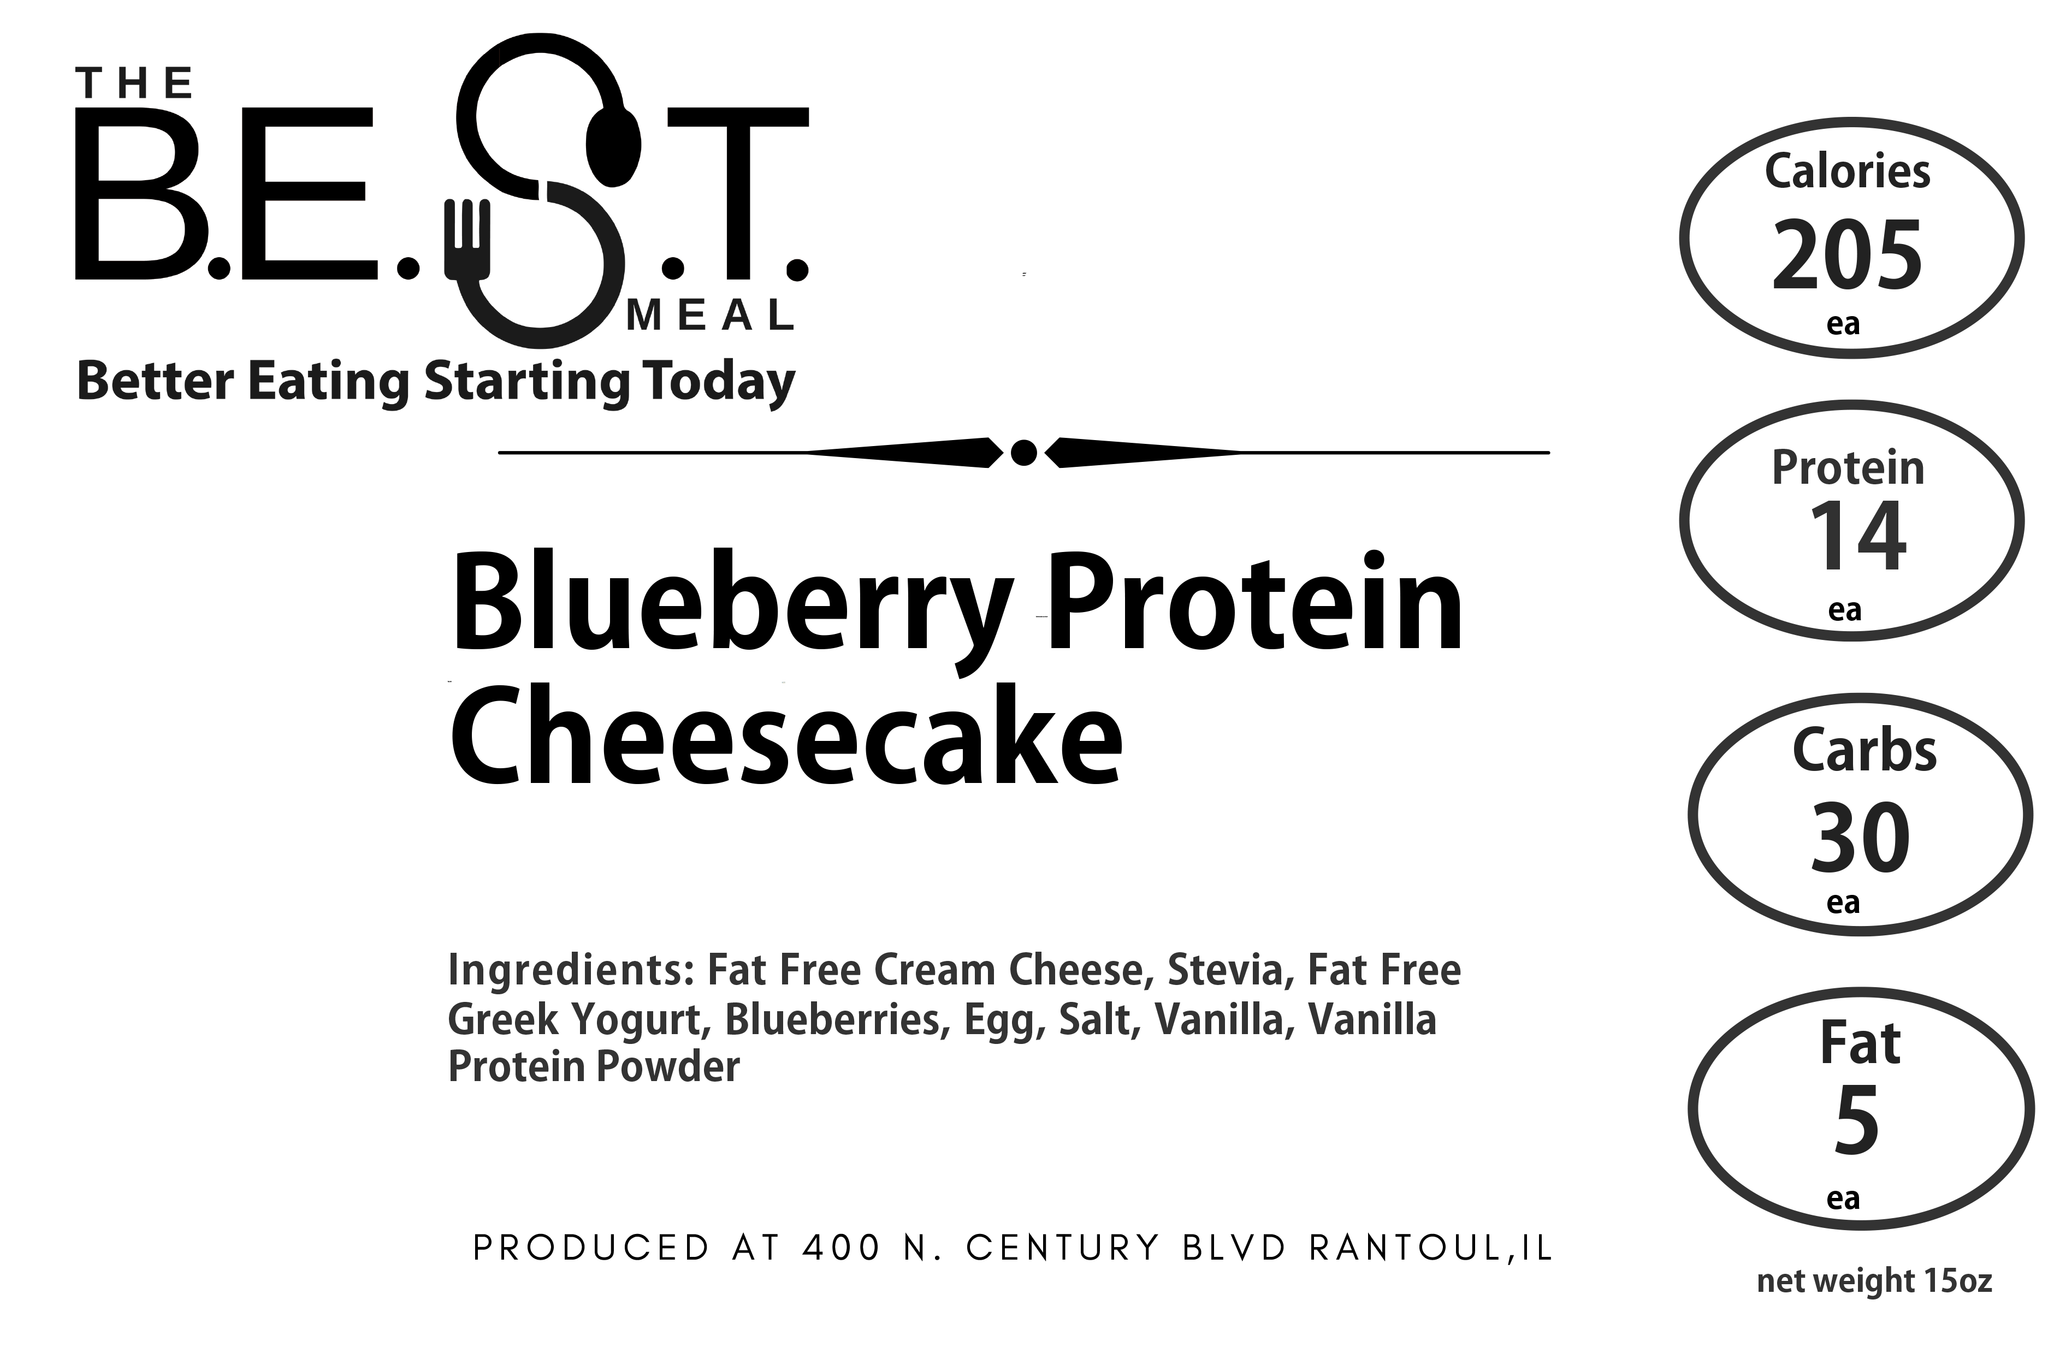 Blueberry Protein Cheesecake